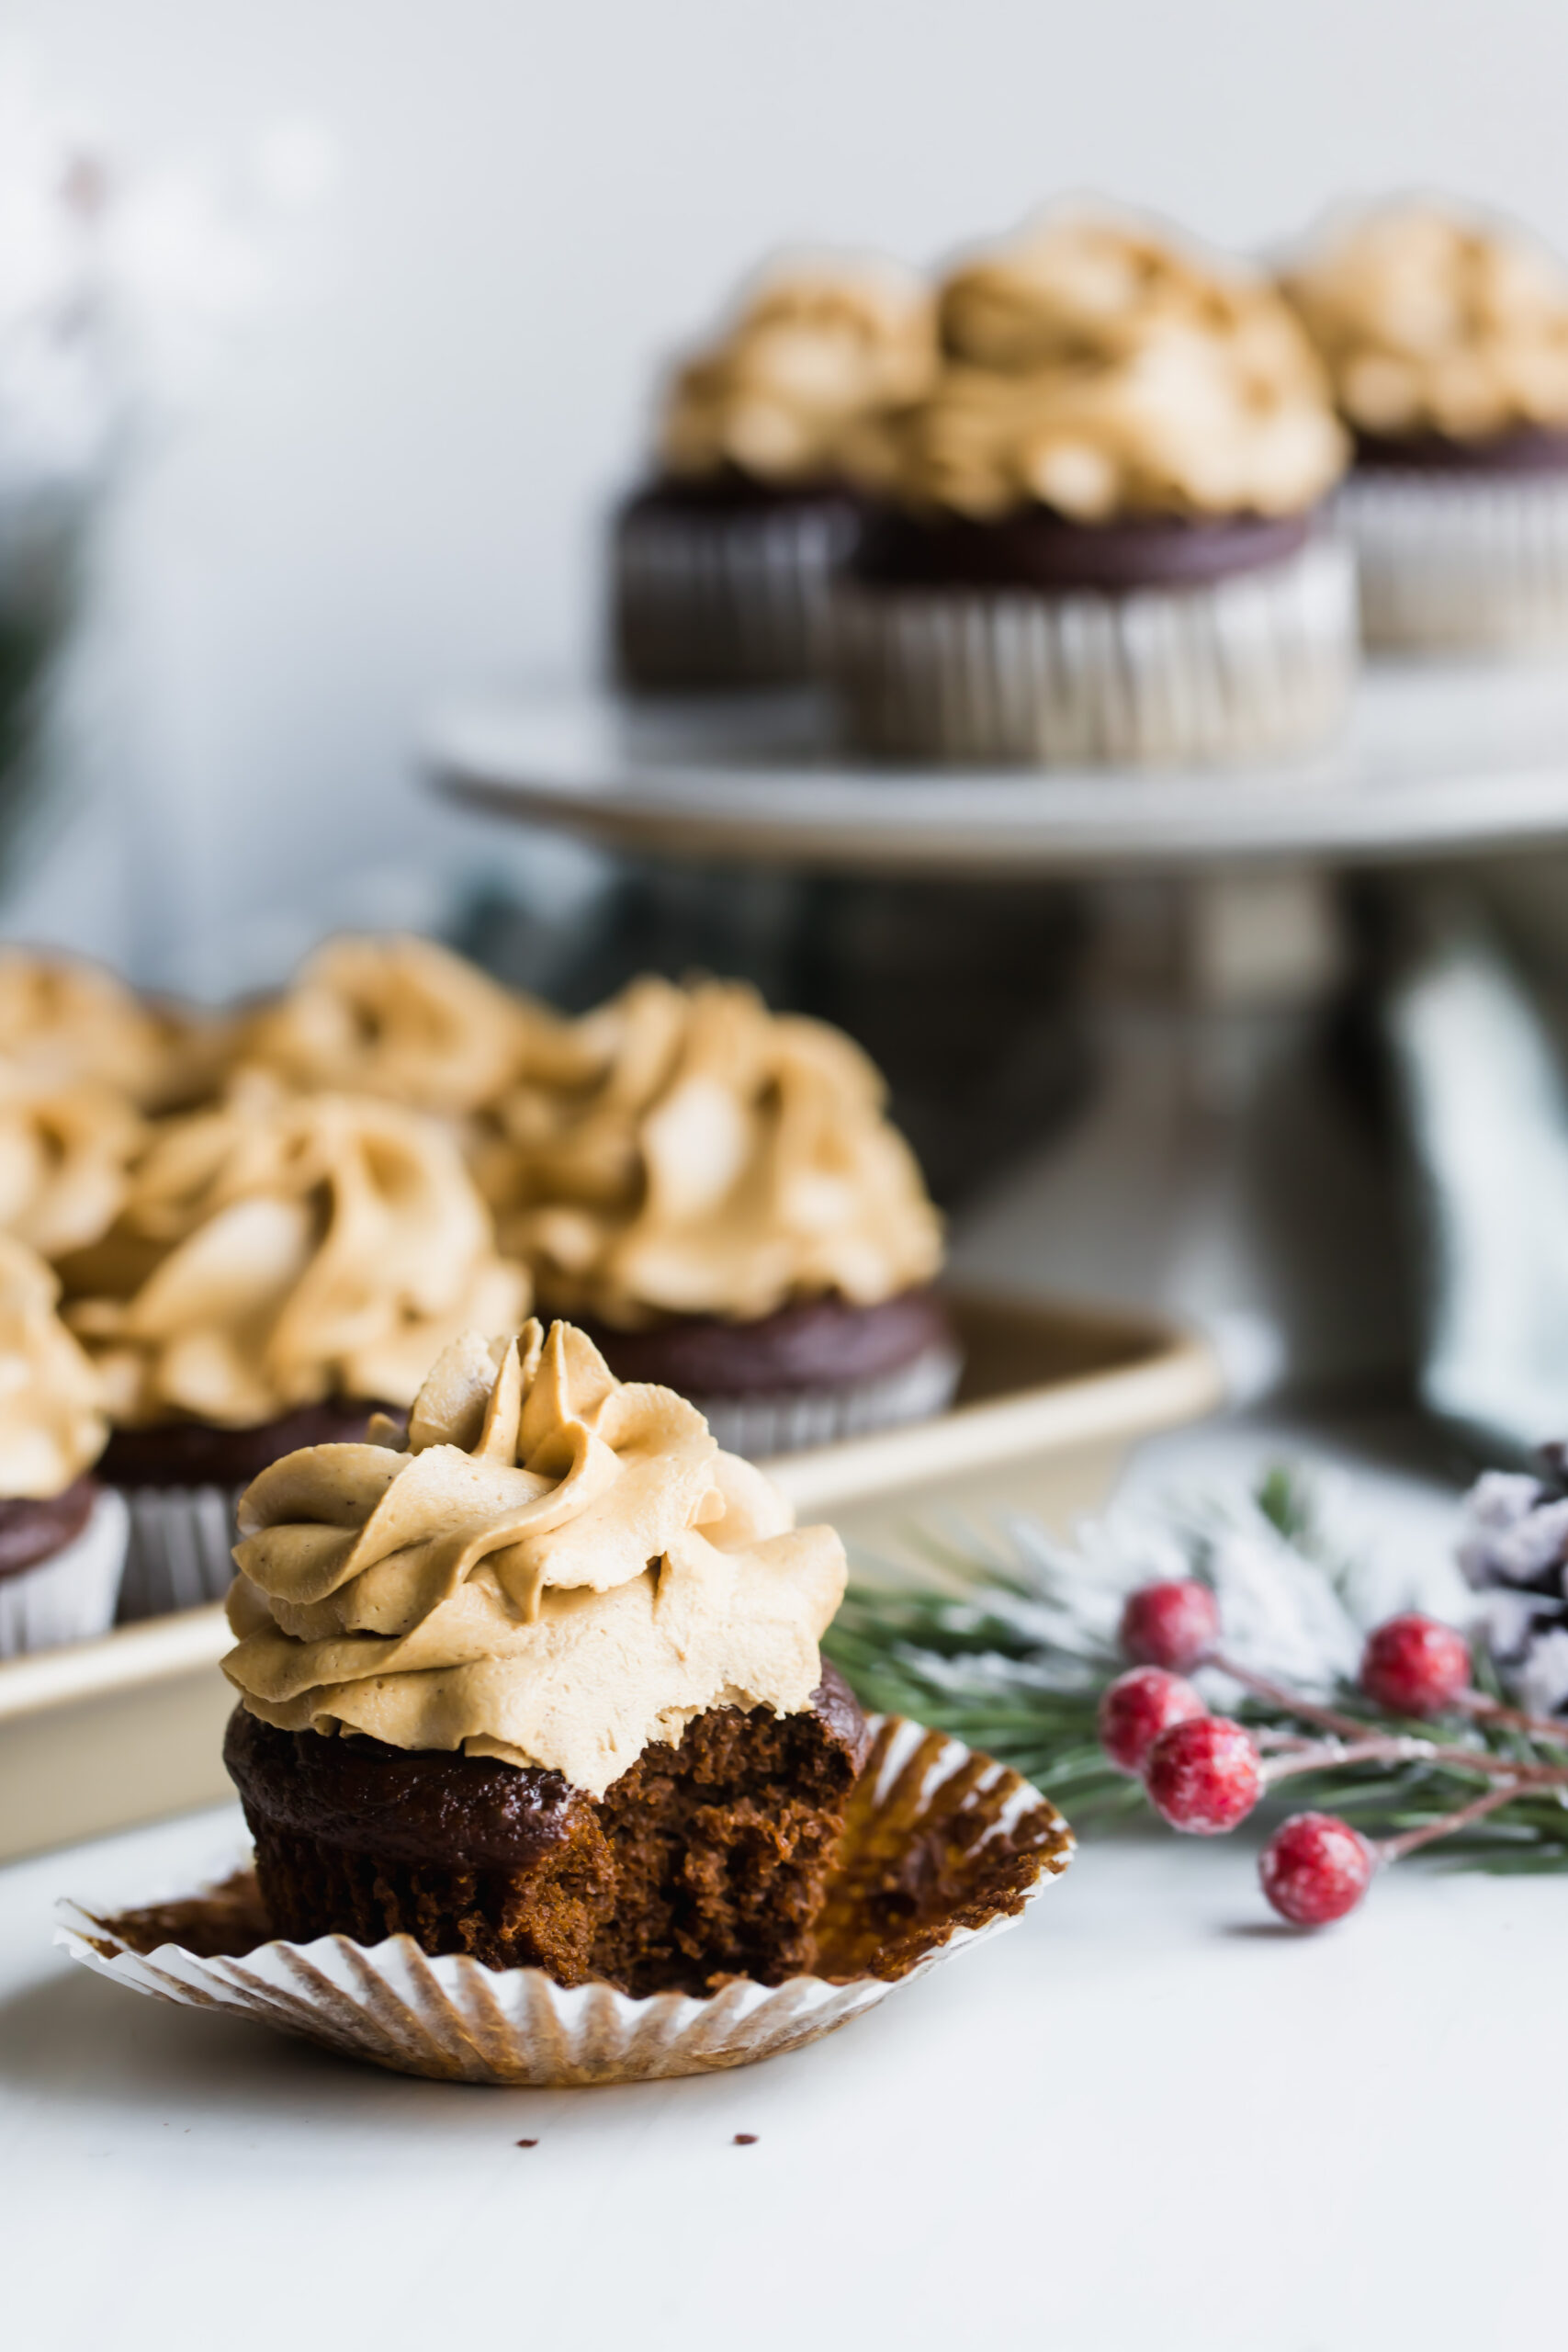 Vegan Gingerbread Cupcakes with Molasses Buttercream (gluten free option)